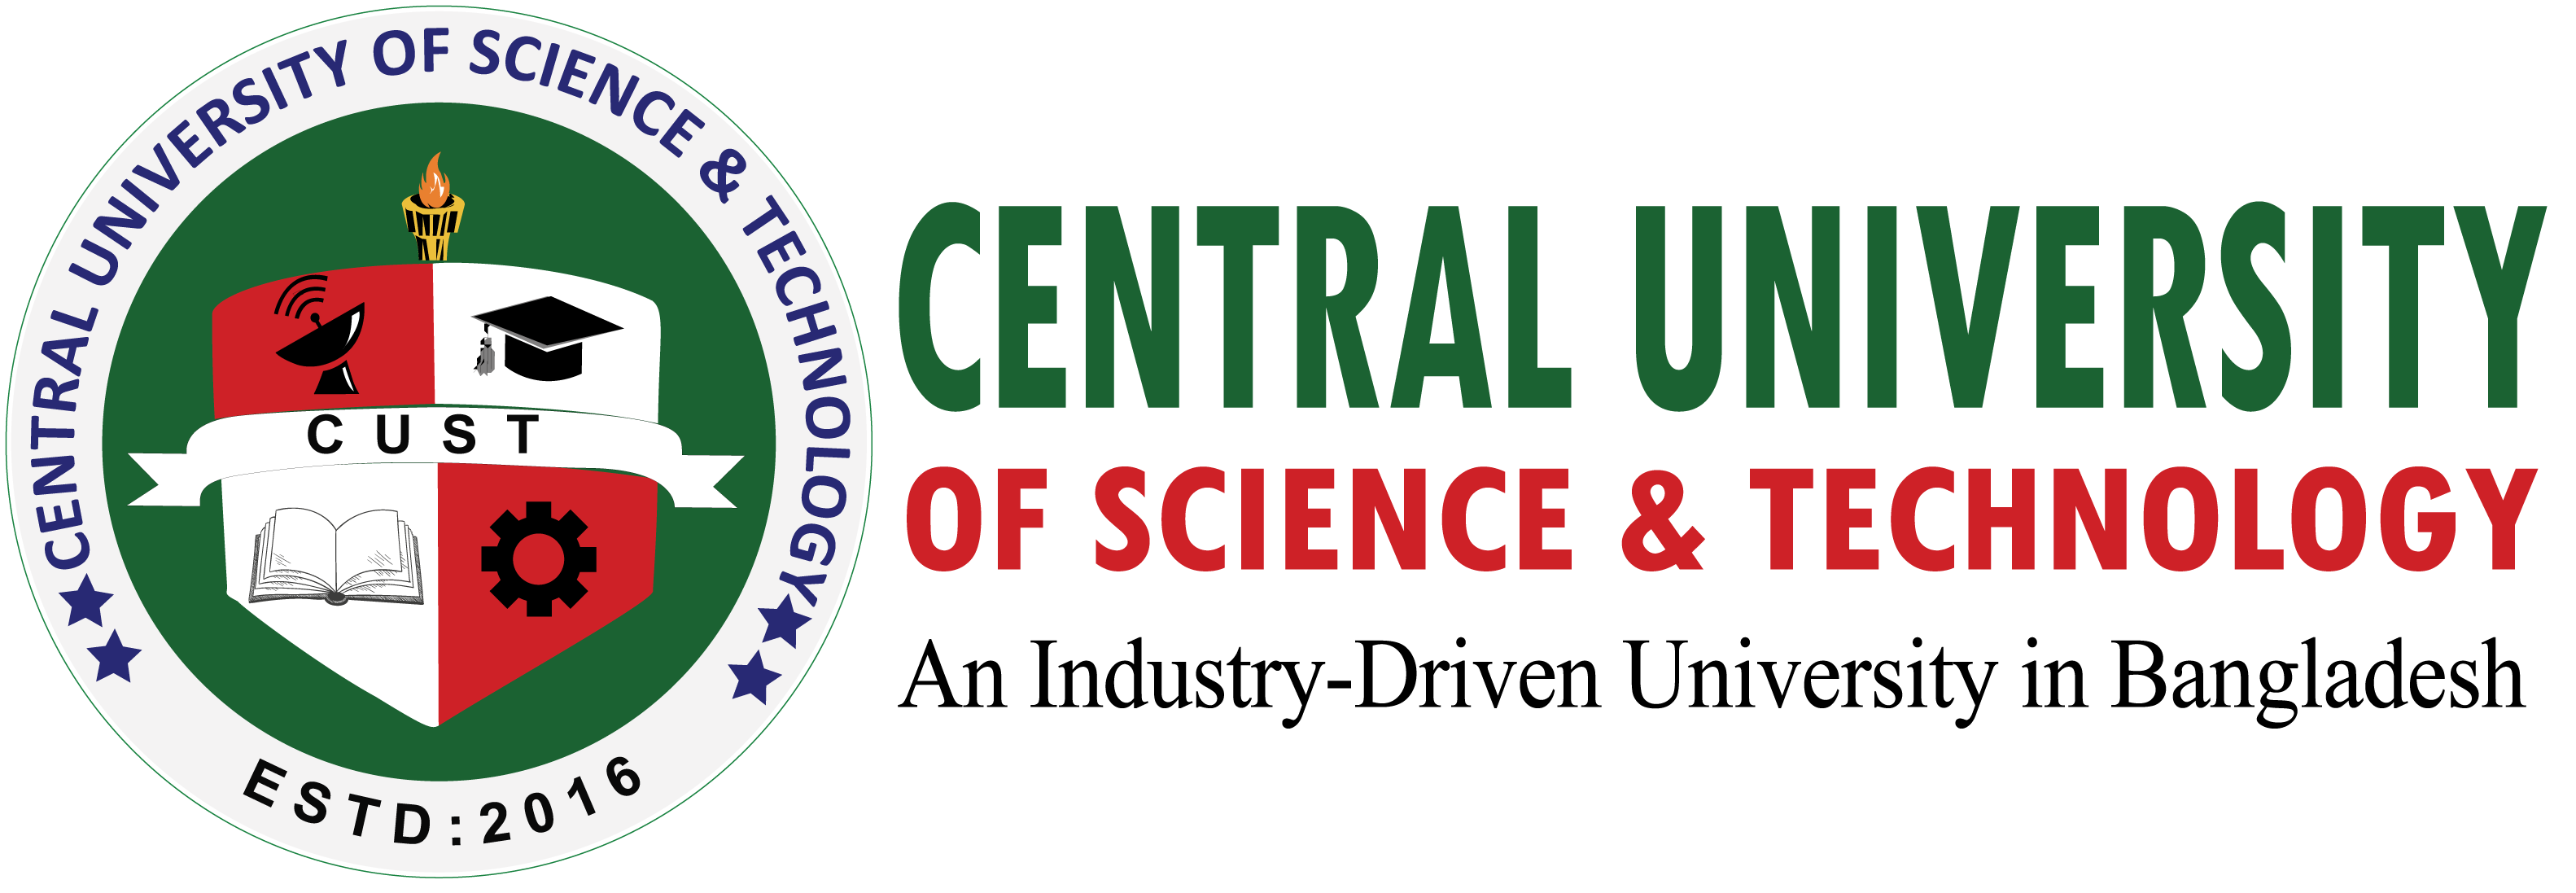 Central University of Science & Technology - First Technical University